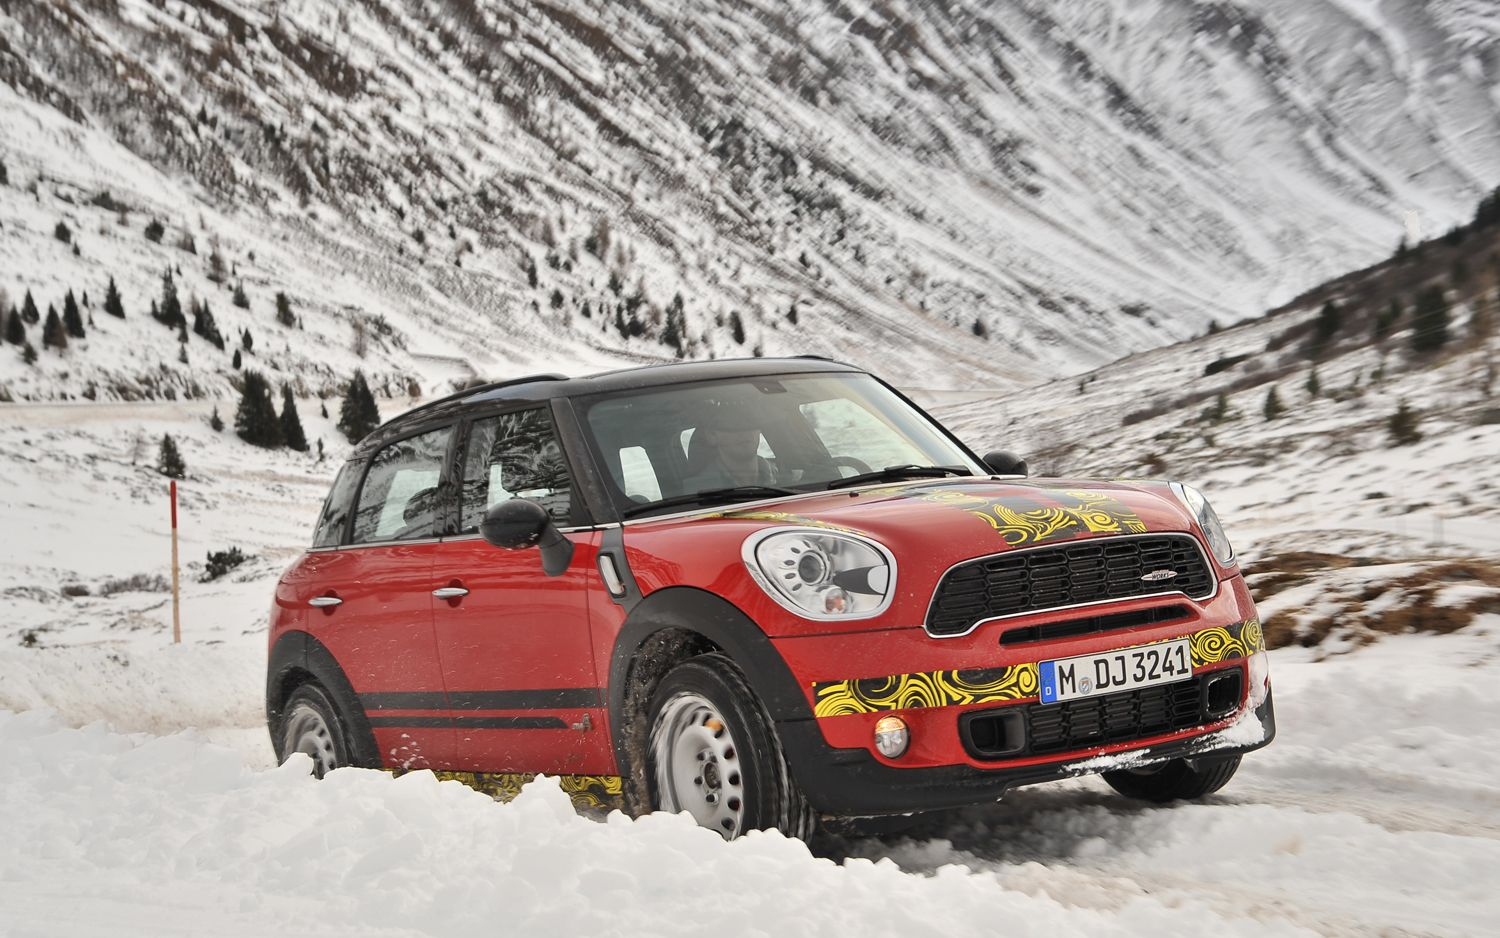 2012 Mini JCW Countryman All4 Prototype Driving In The Snow1